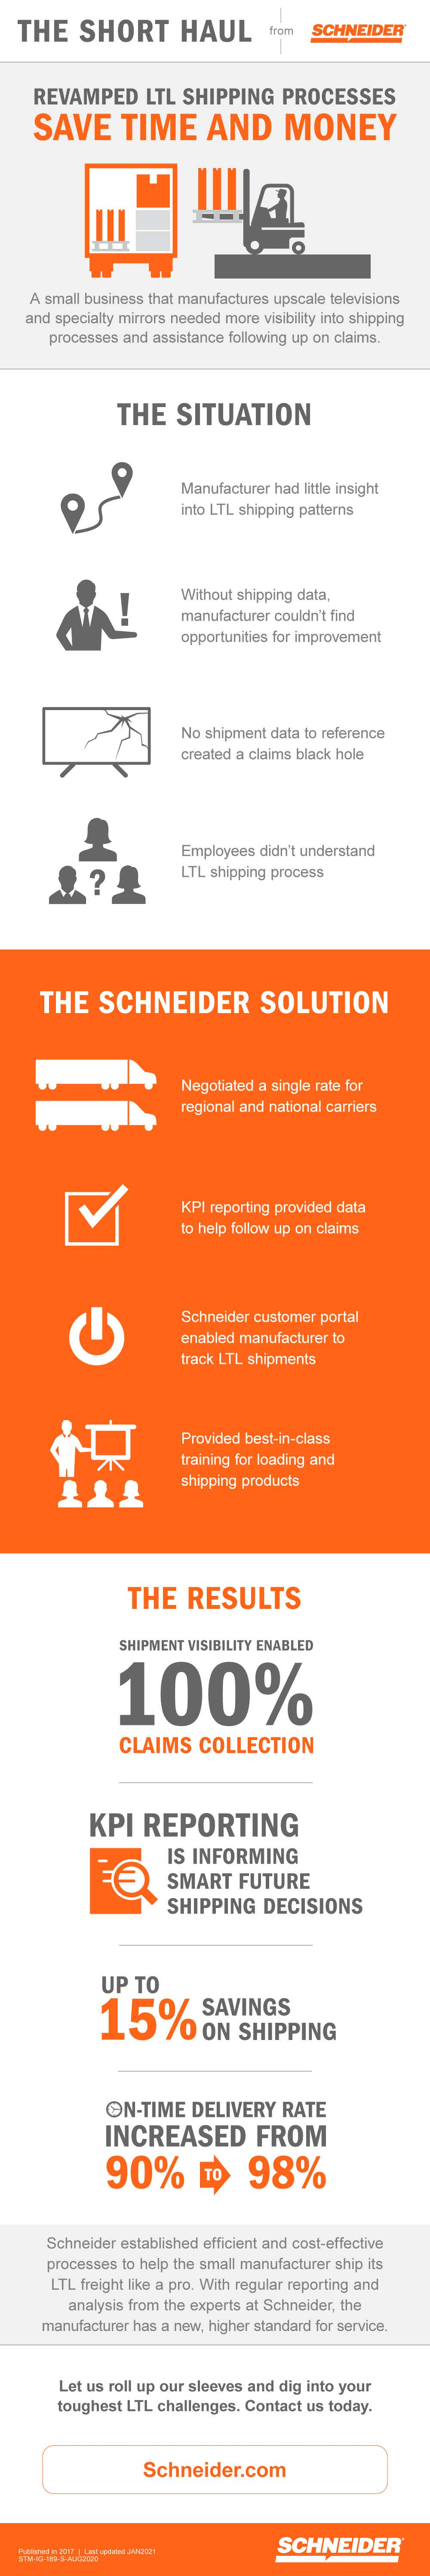 infographic file which steps through how a revamped LTL (Less Than Truckload) shipping process saves time and money